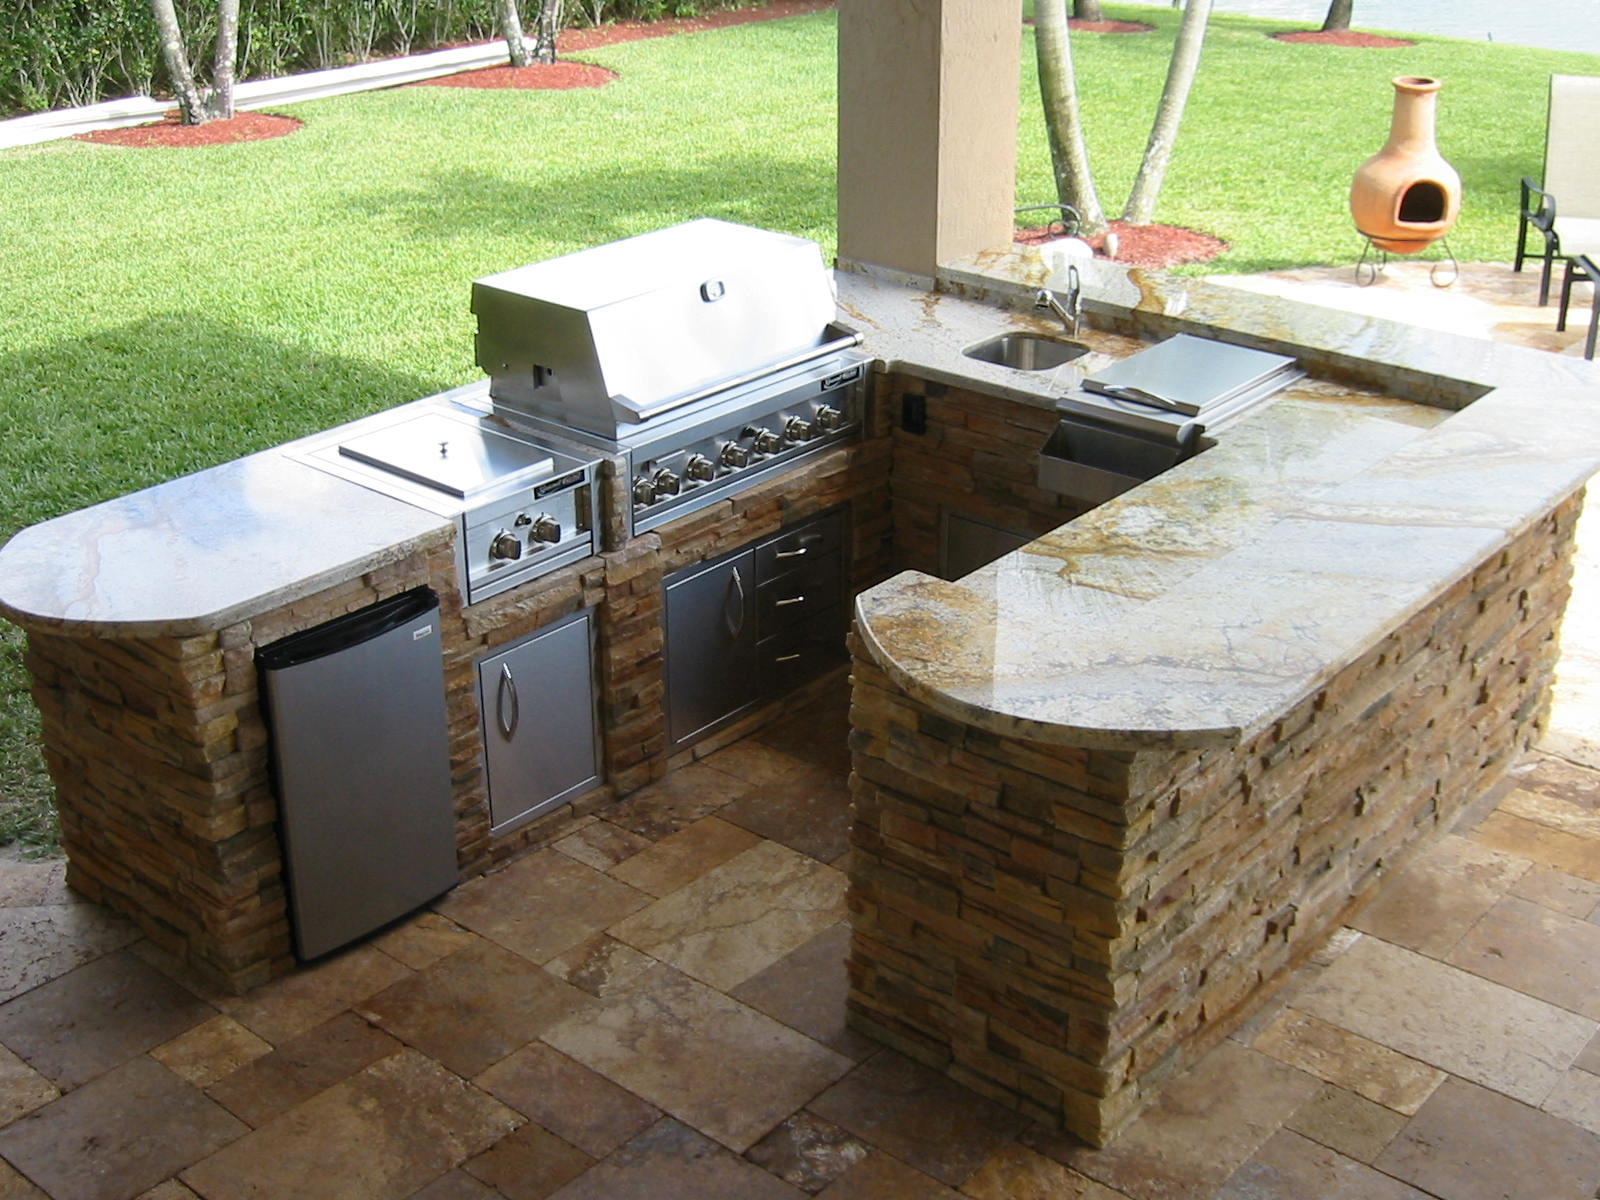 Outdoor kitchen grills l shaped kitchen designs for Outdoor kitchen designs